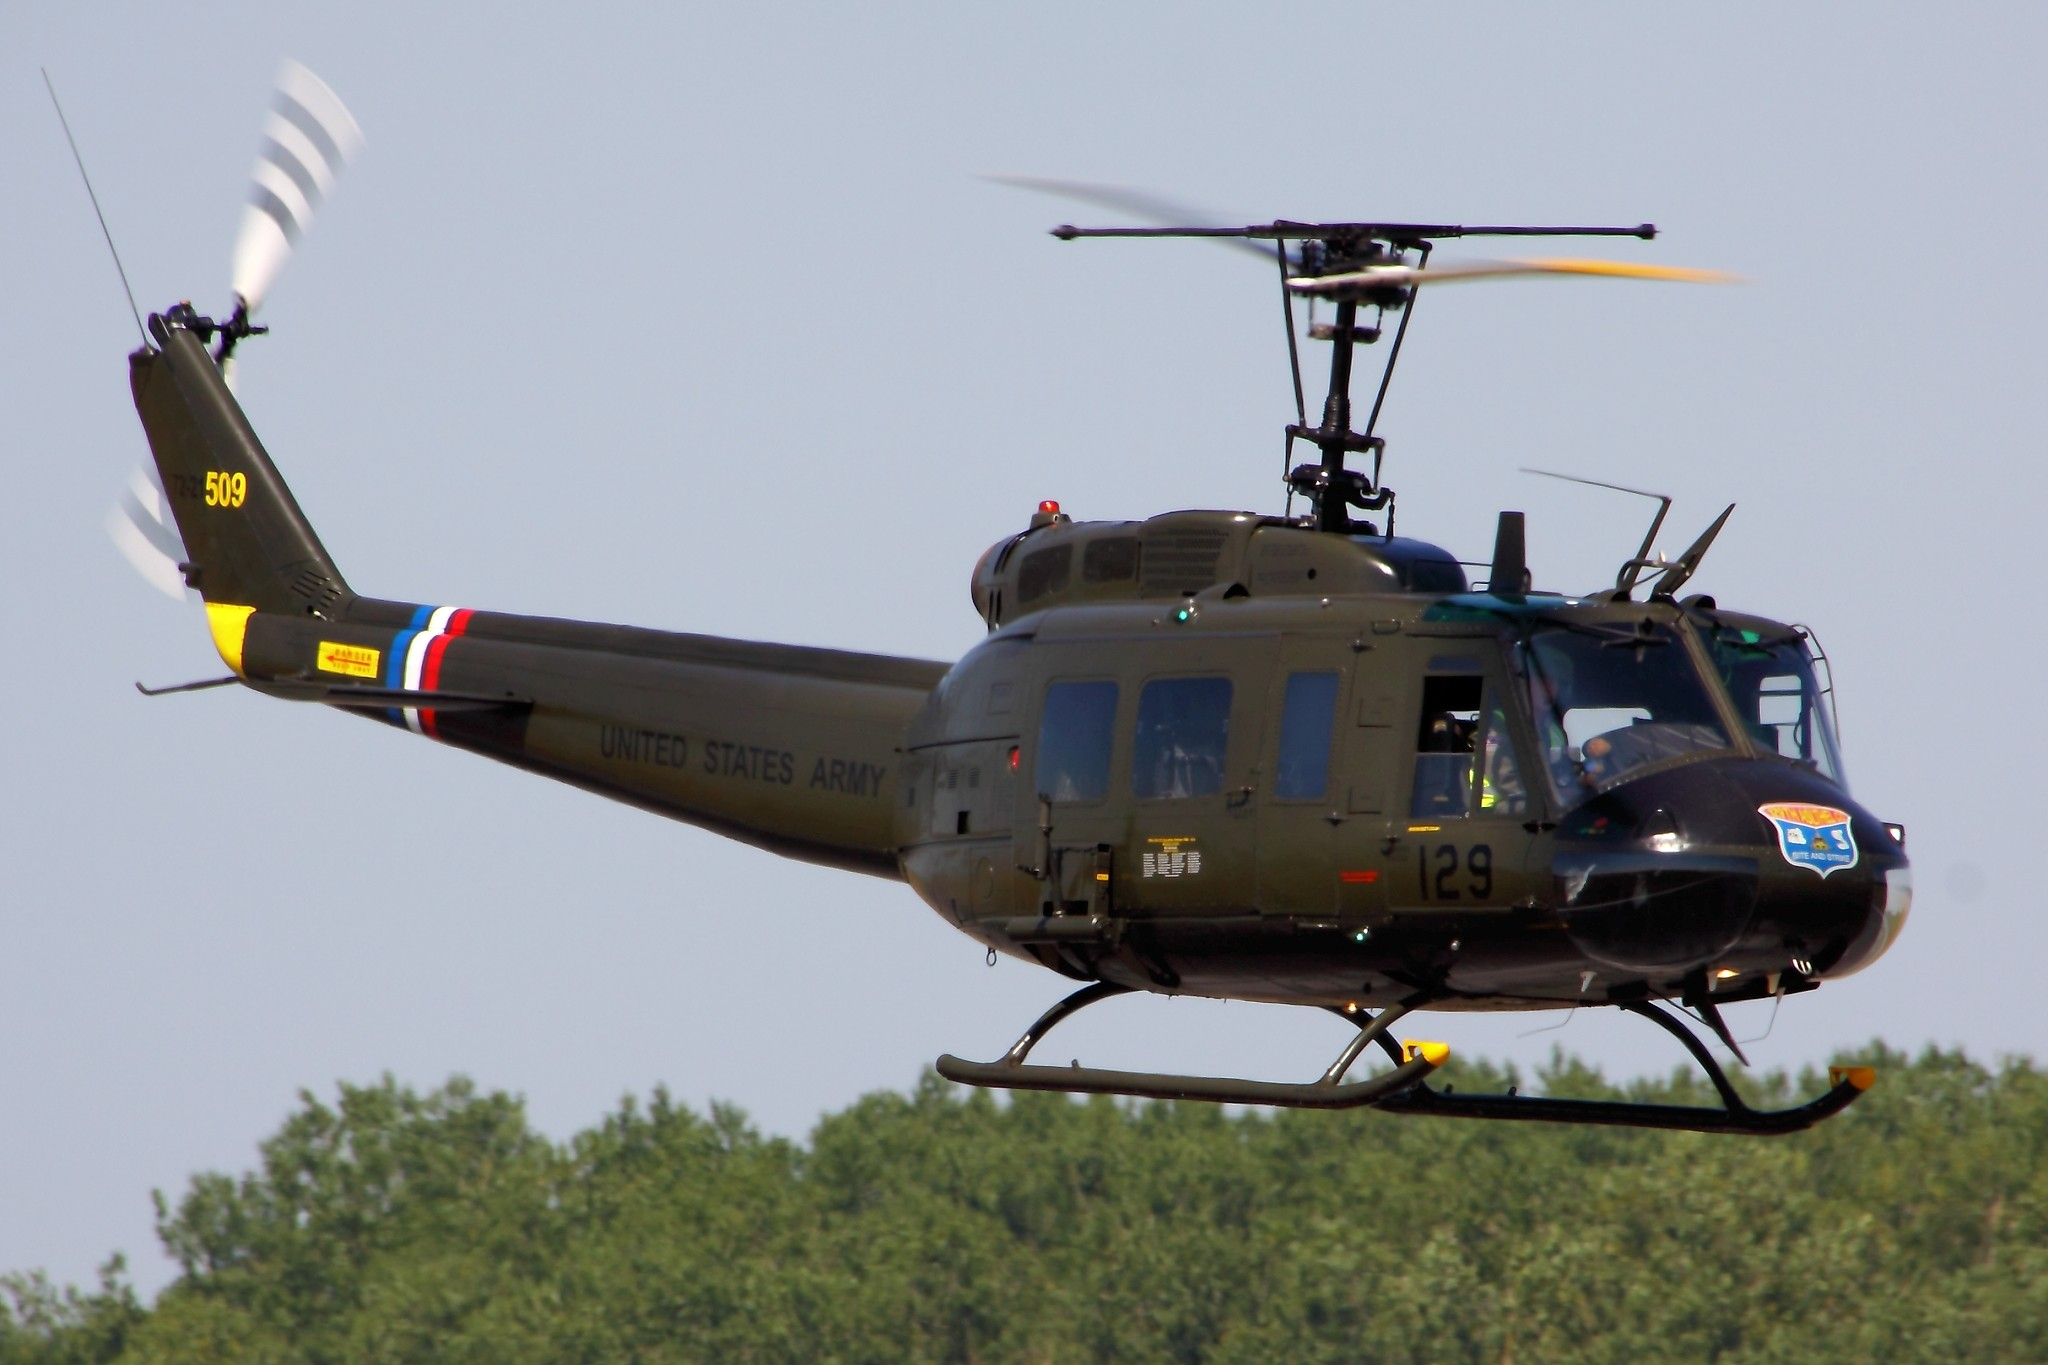 Res: 2048x1365, Helicopter military UH-1H Huey h wallpaper      150473    WallpaperUP